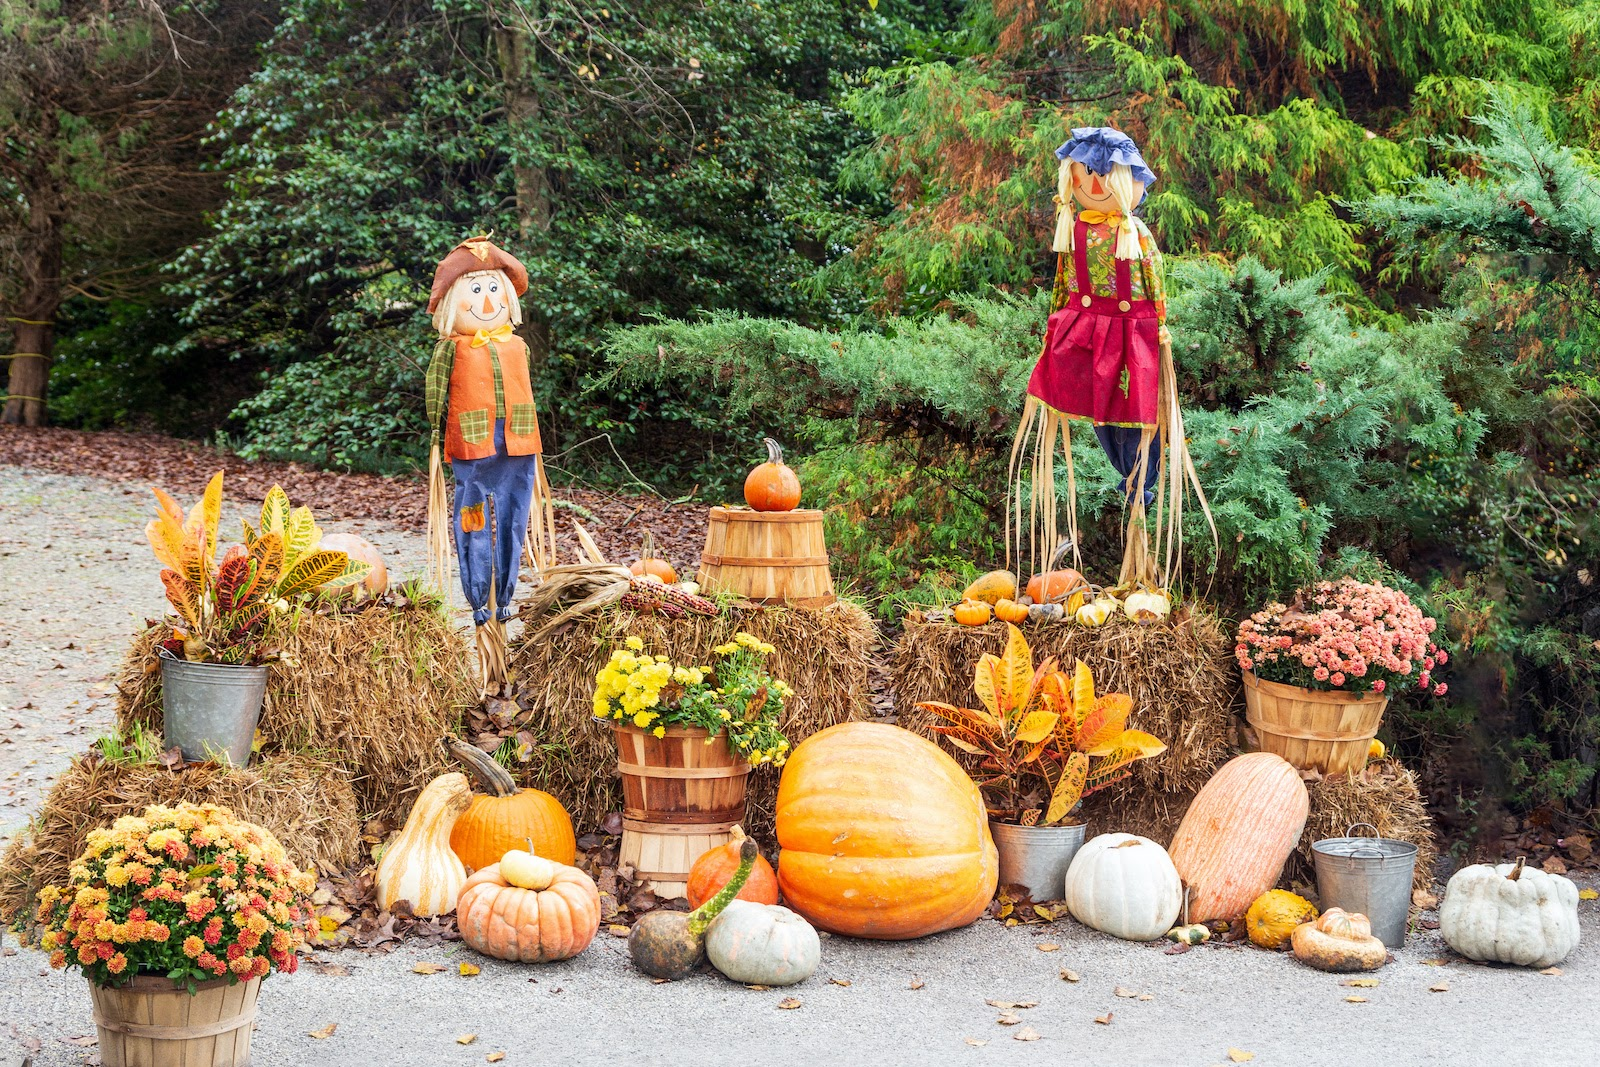 Outdoor harvest themed Thanksgiving decoration ideas.